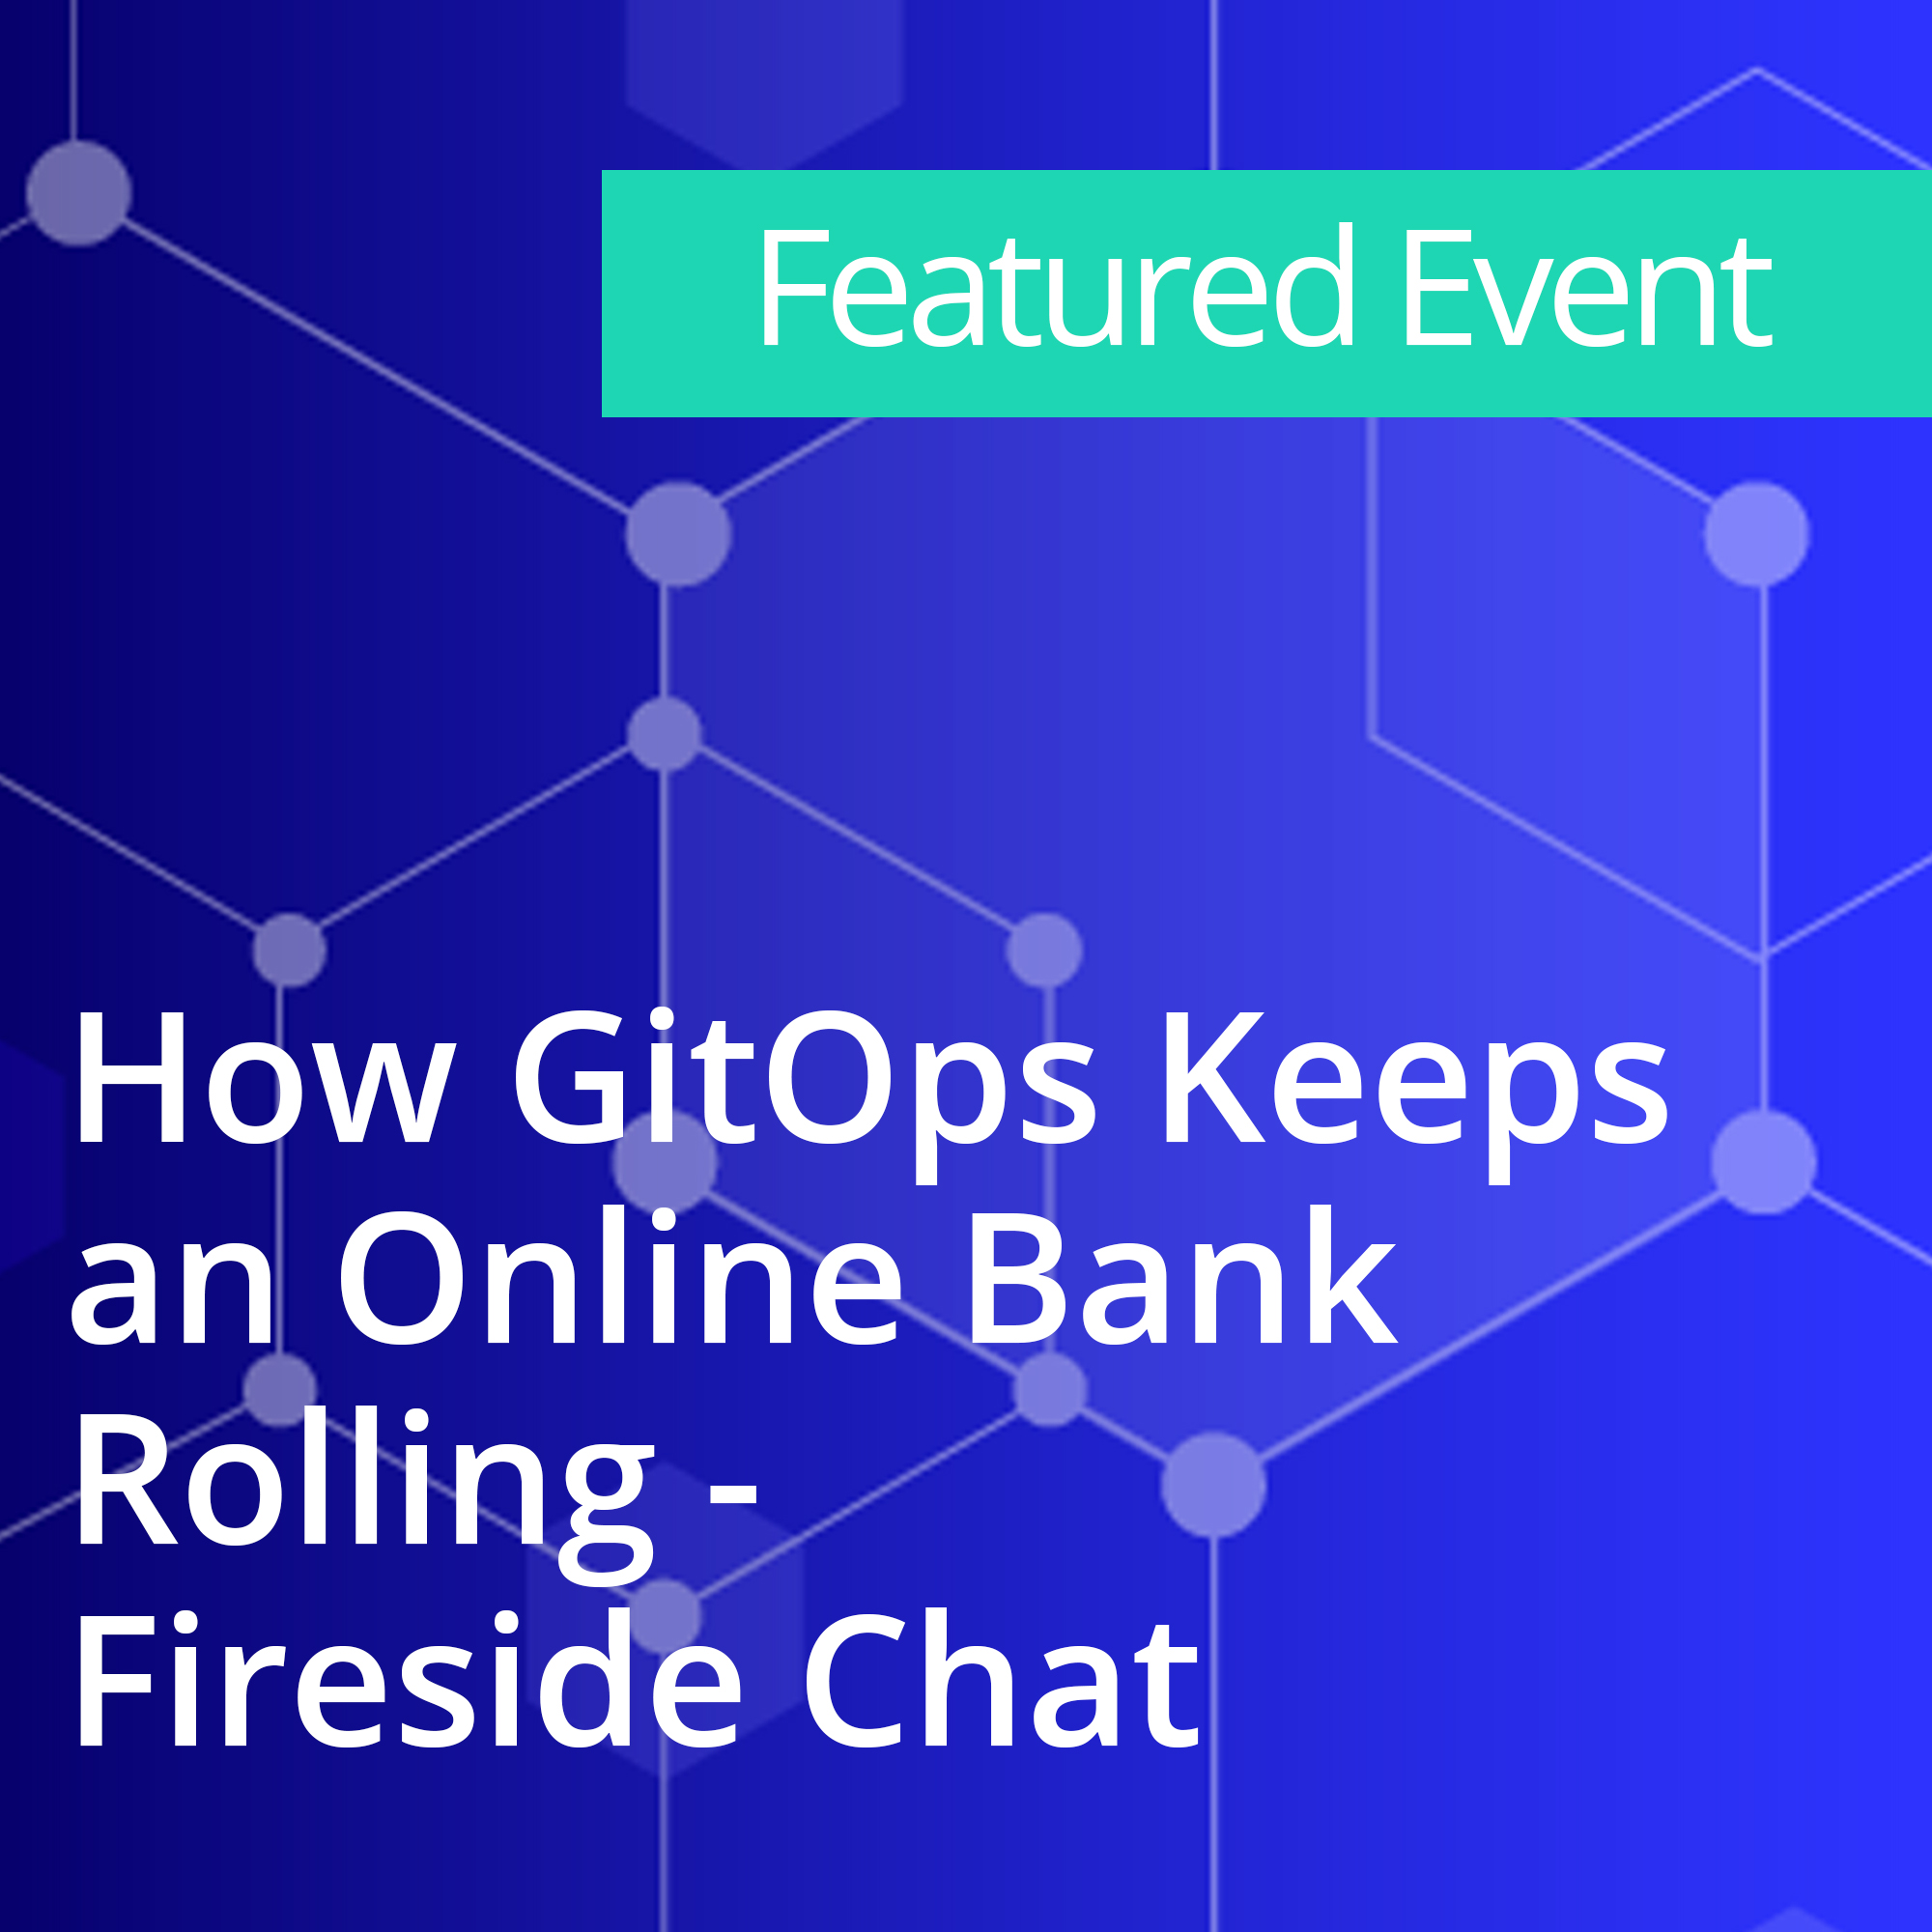 How GitOps Keeps an Online Bank Rolling - Fireside Chat